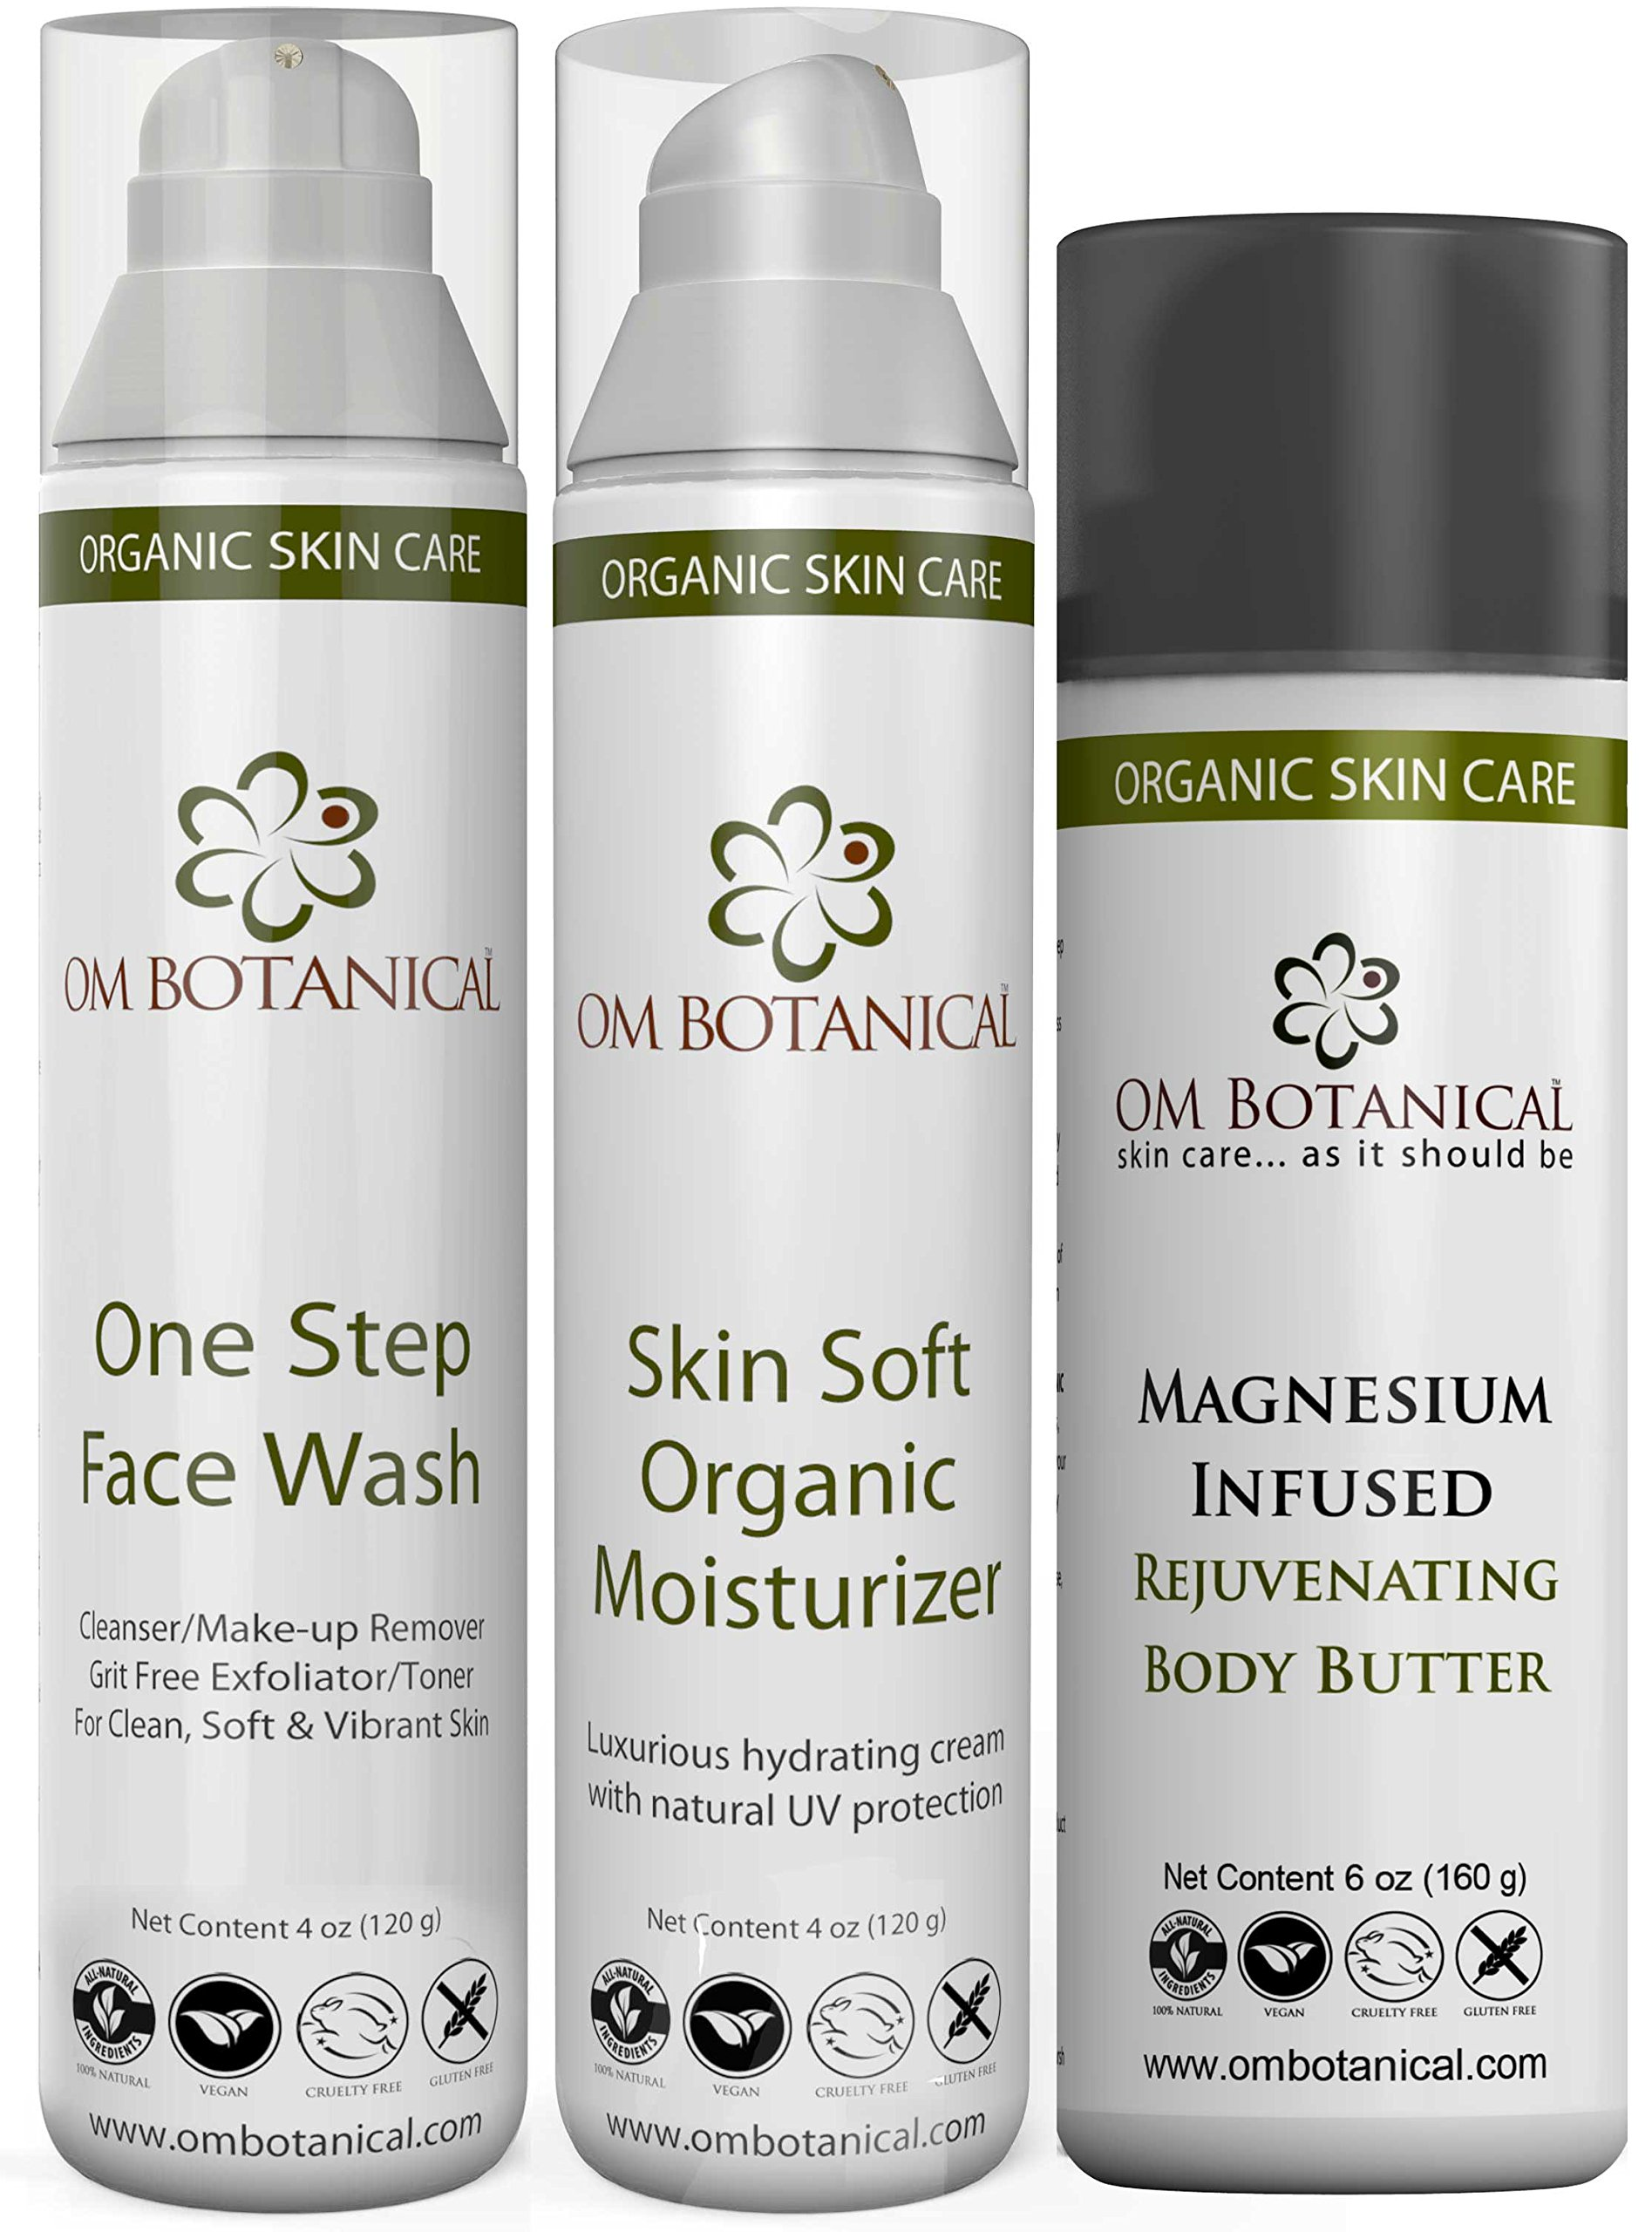 Organic Skin Care Daily Essentials Kit - One Step Face Wash, Skin soft Moisturizer and Magnesium Infused Body Butter